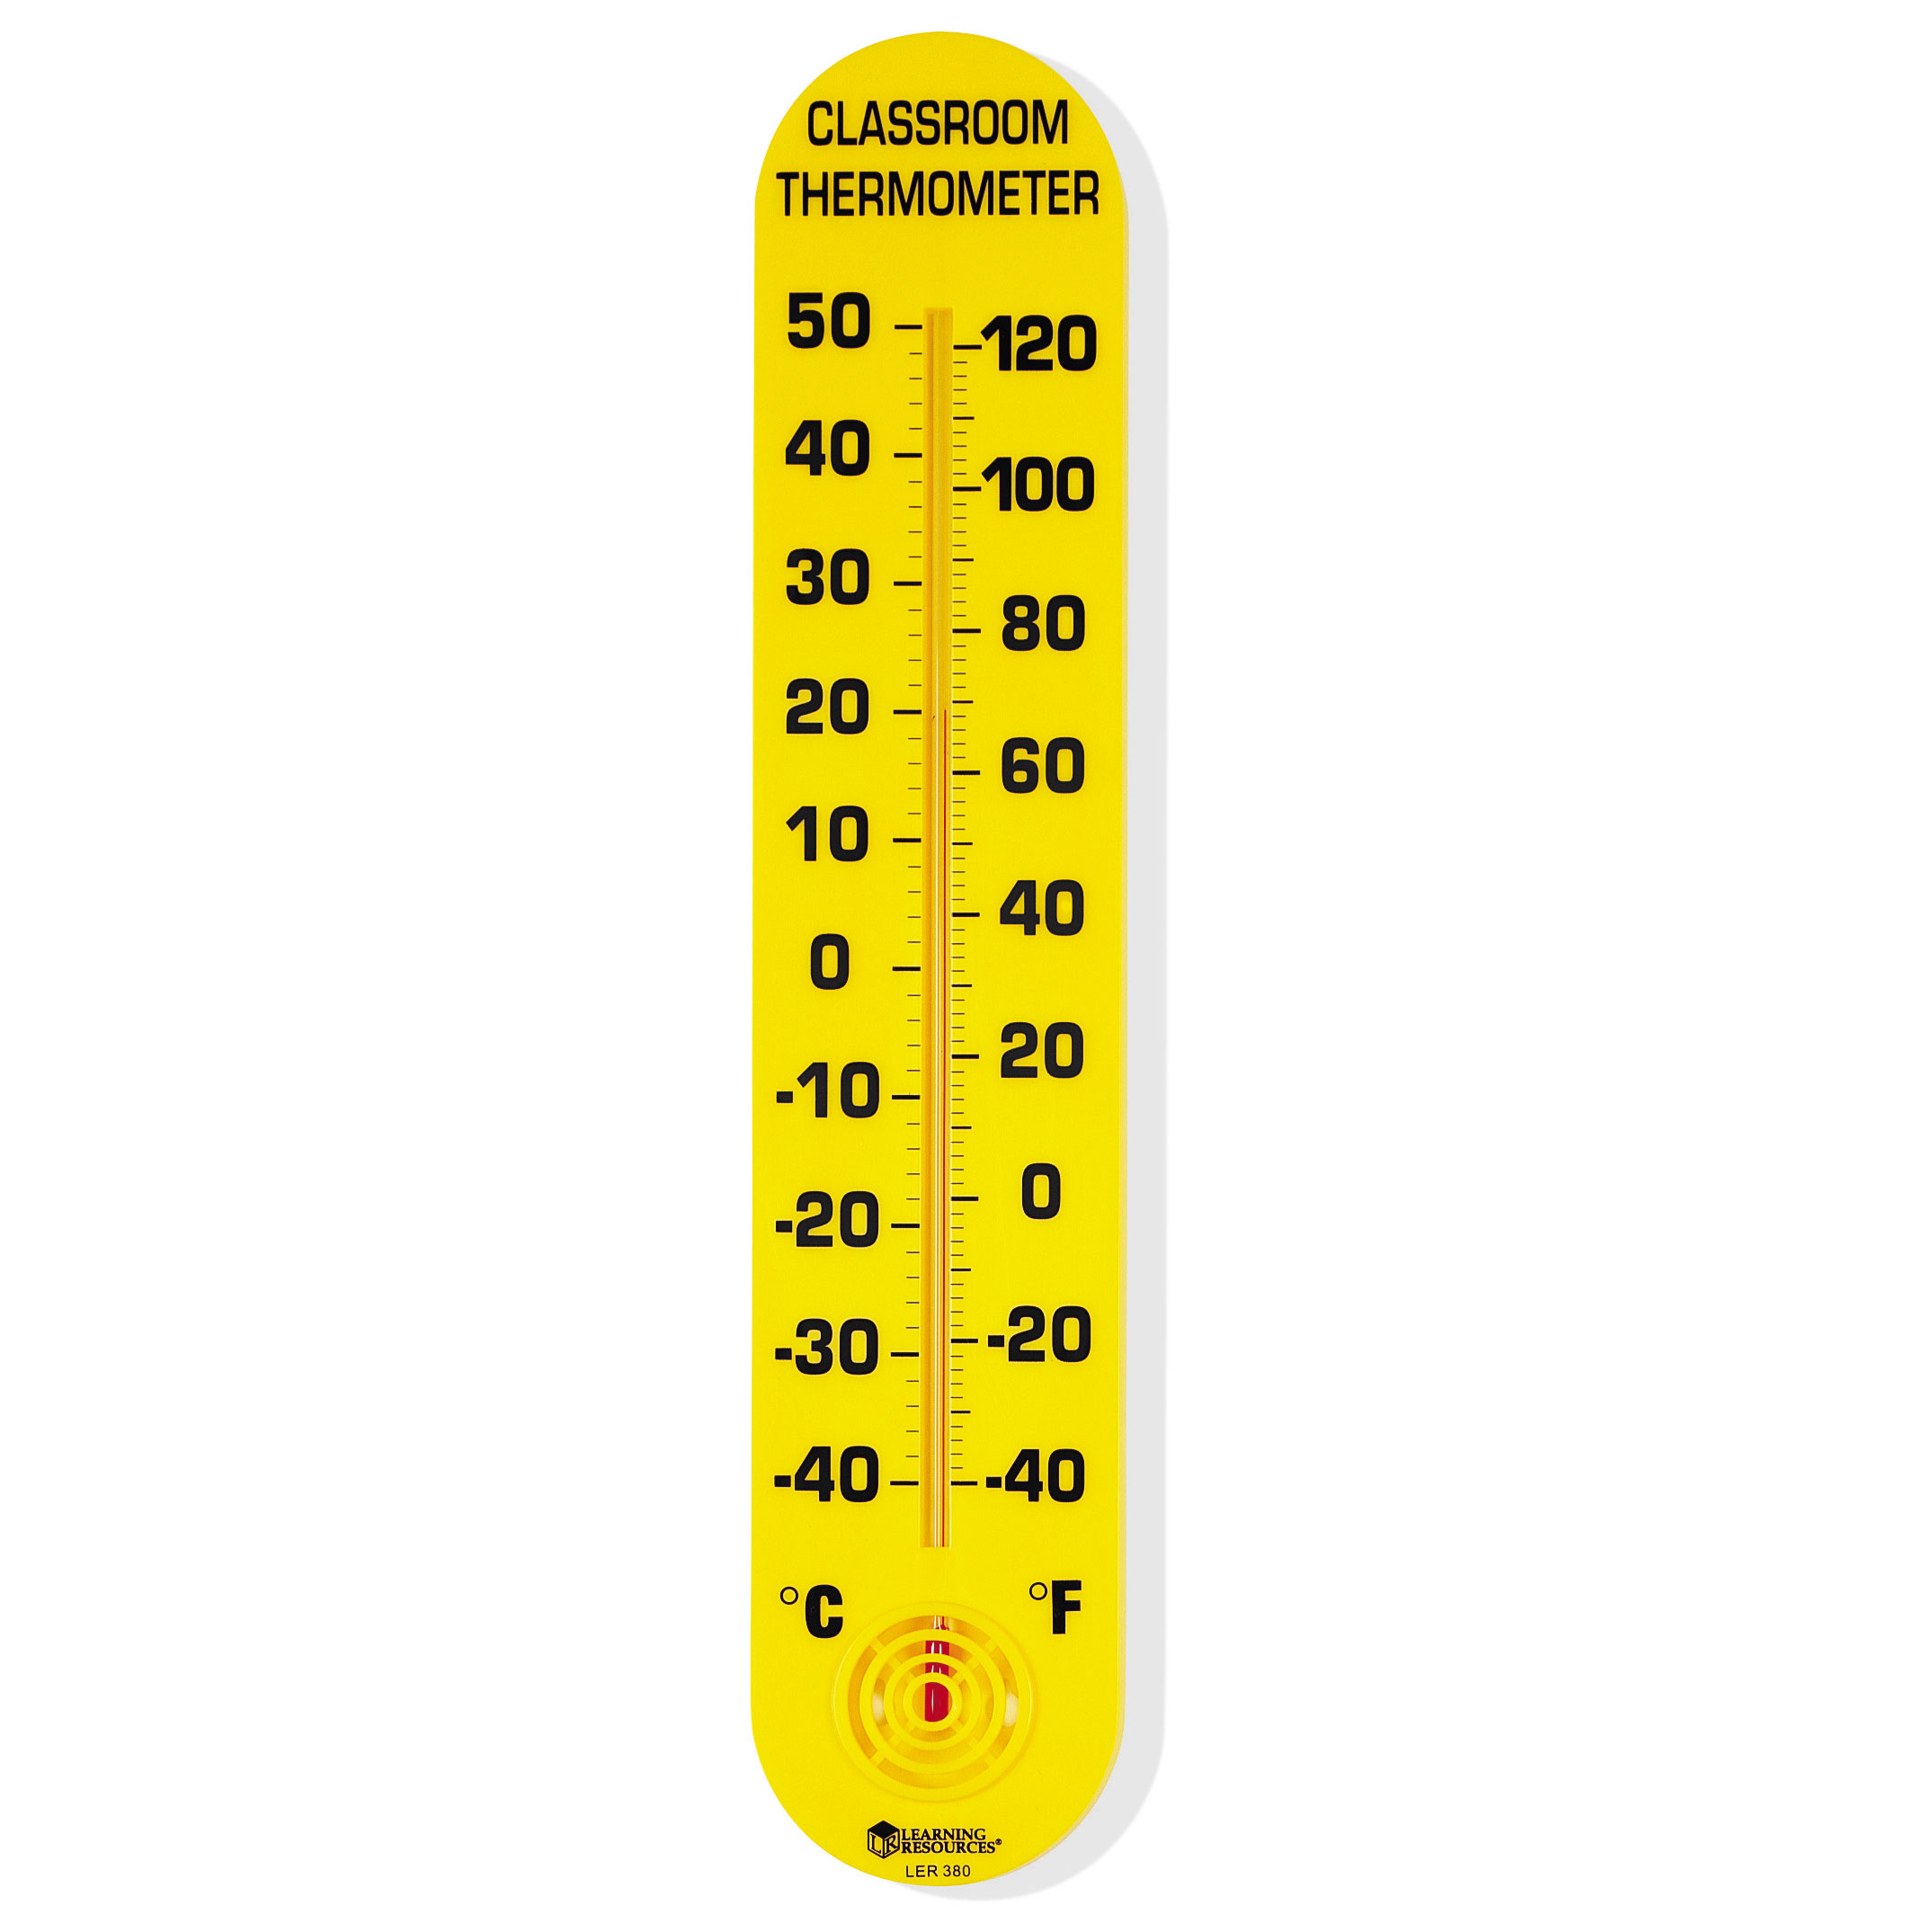 Classroom Thermometer 38cm